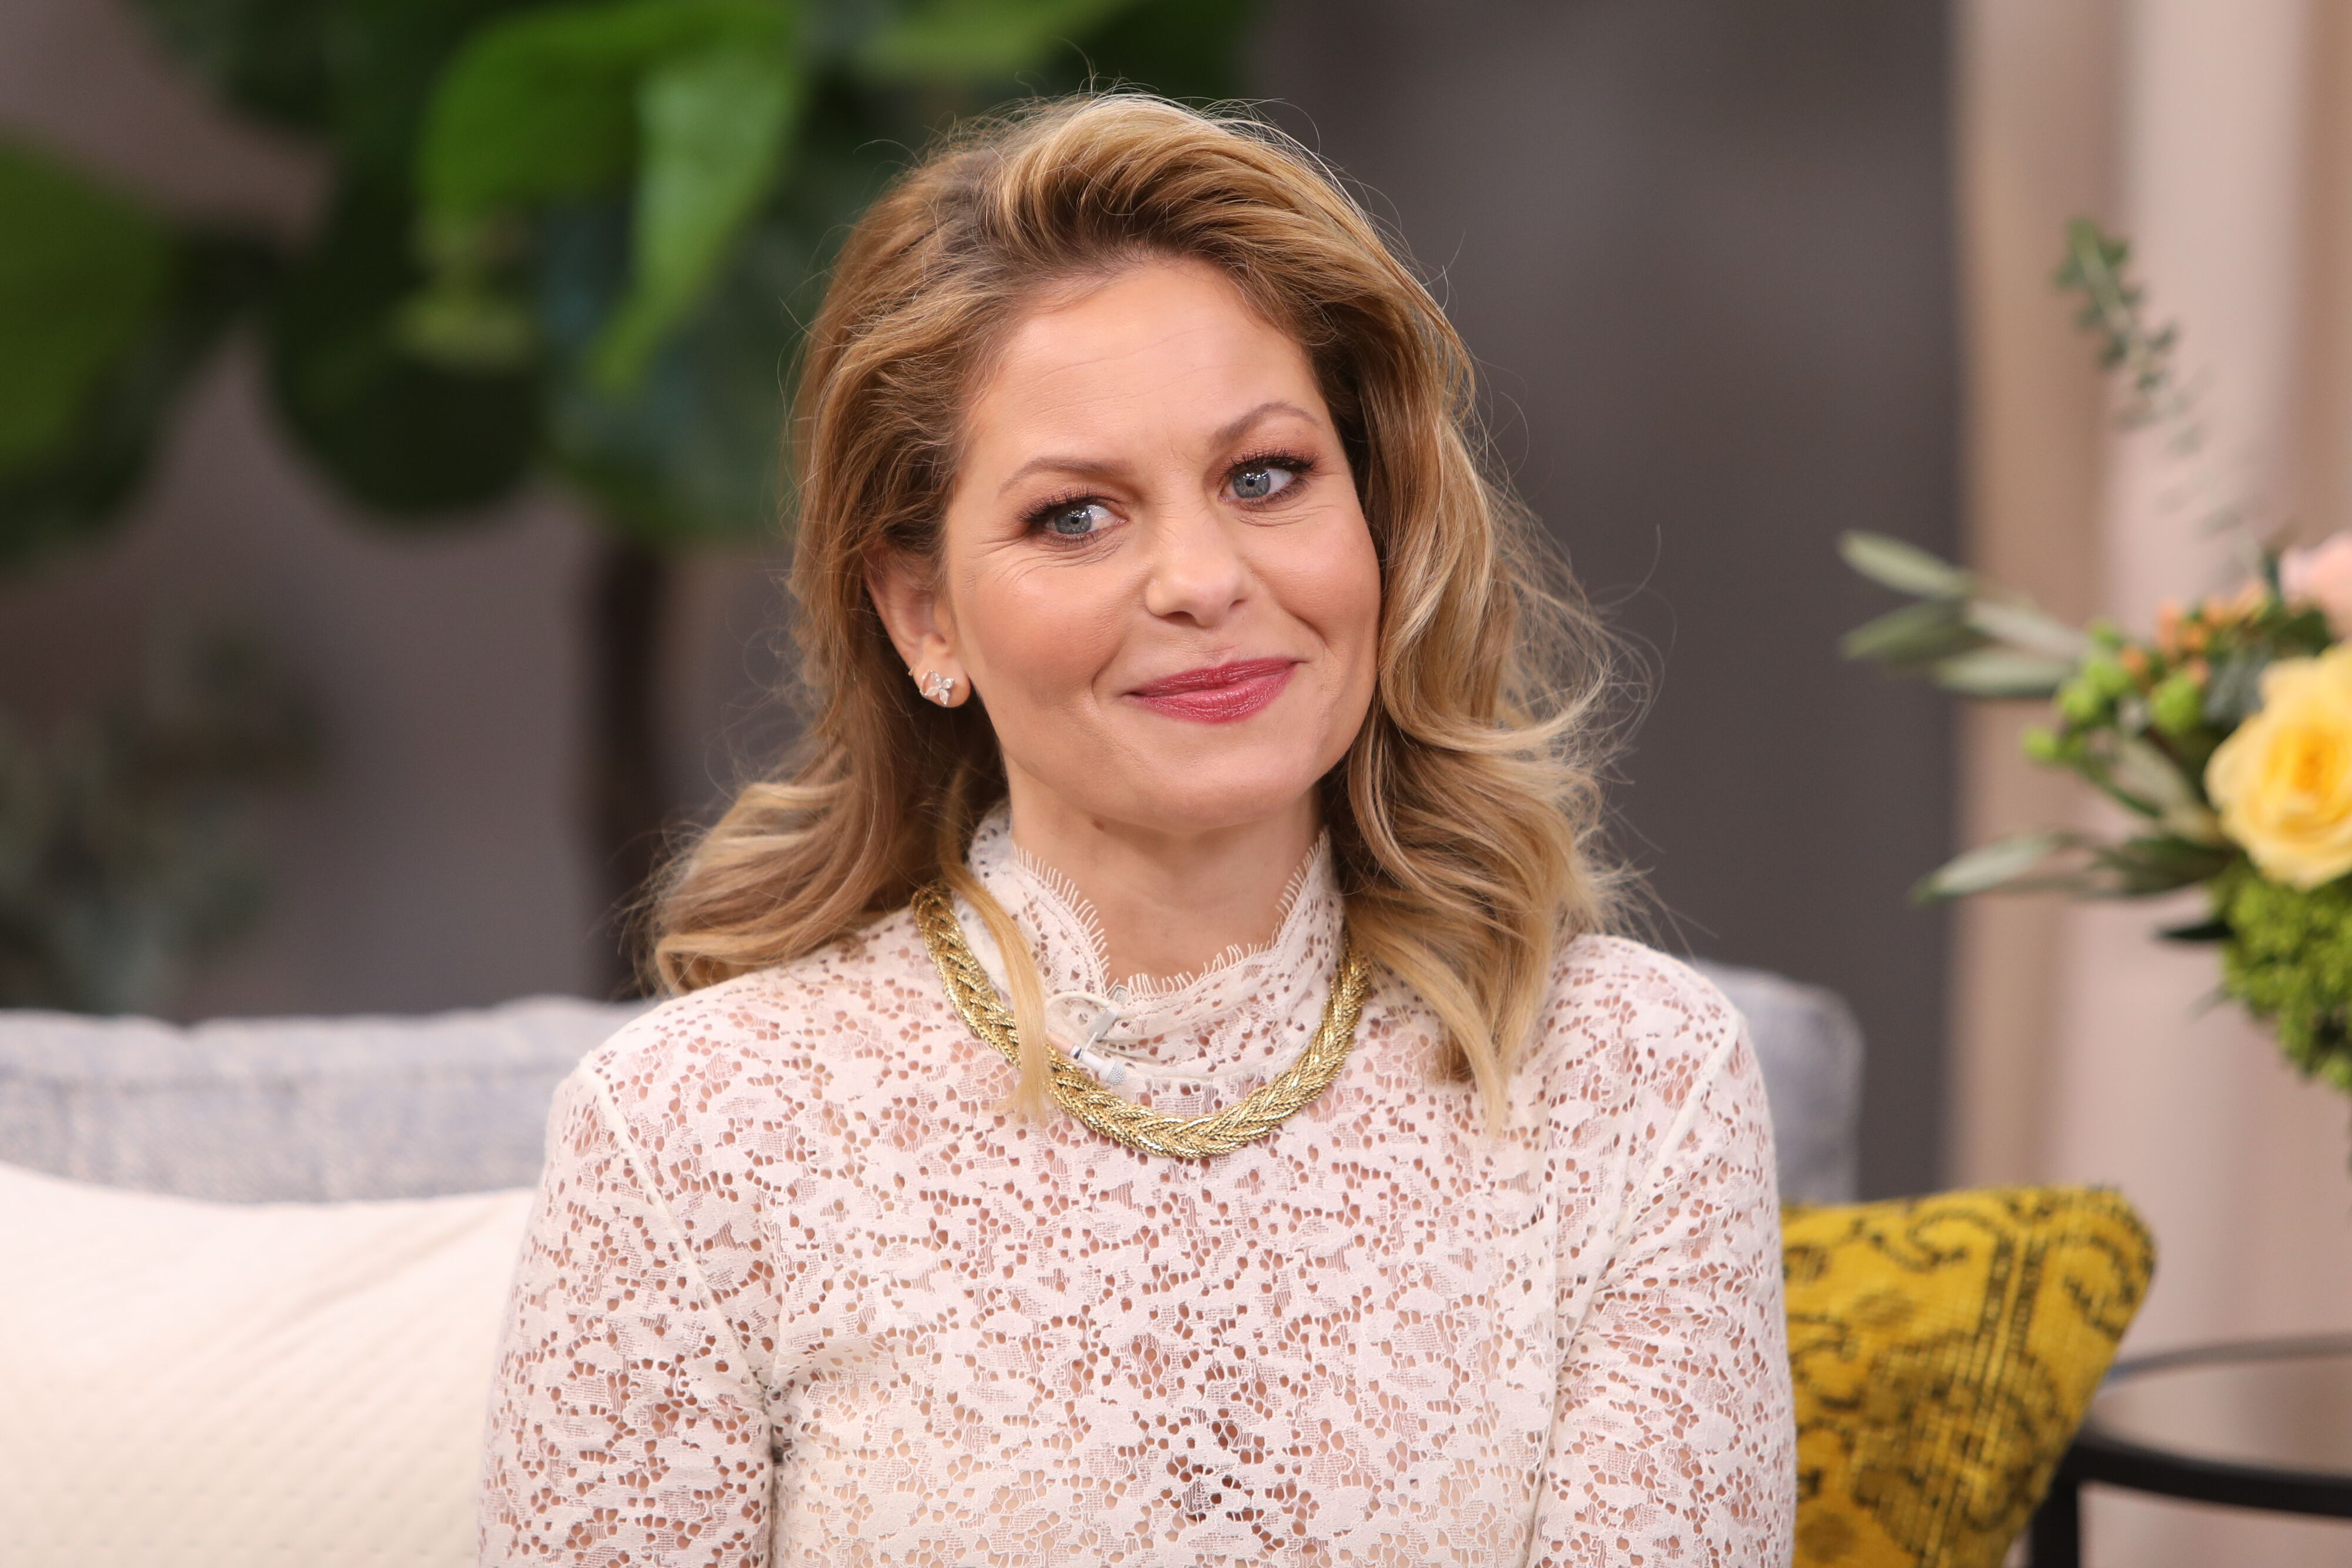 """Candace Cameron Bure visits Hallmark Channel's """"Home & Family"""" at Universal Studios Hollywood on October 21, 2019 in Universal City, California 